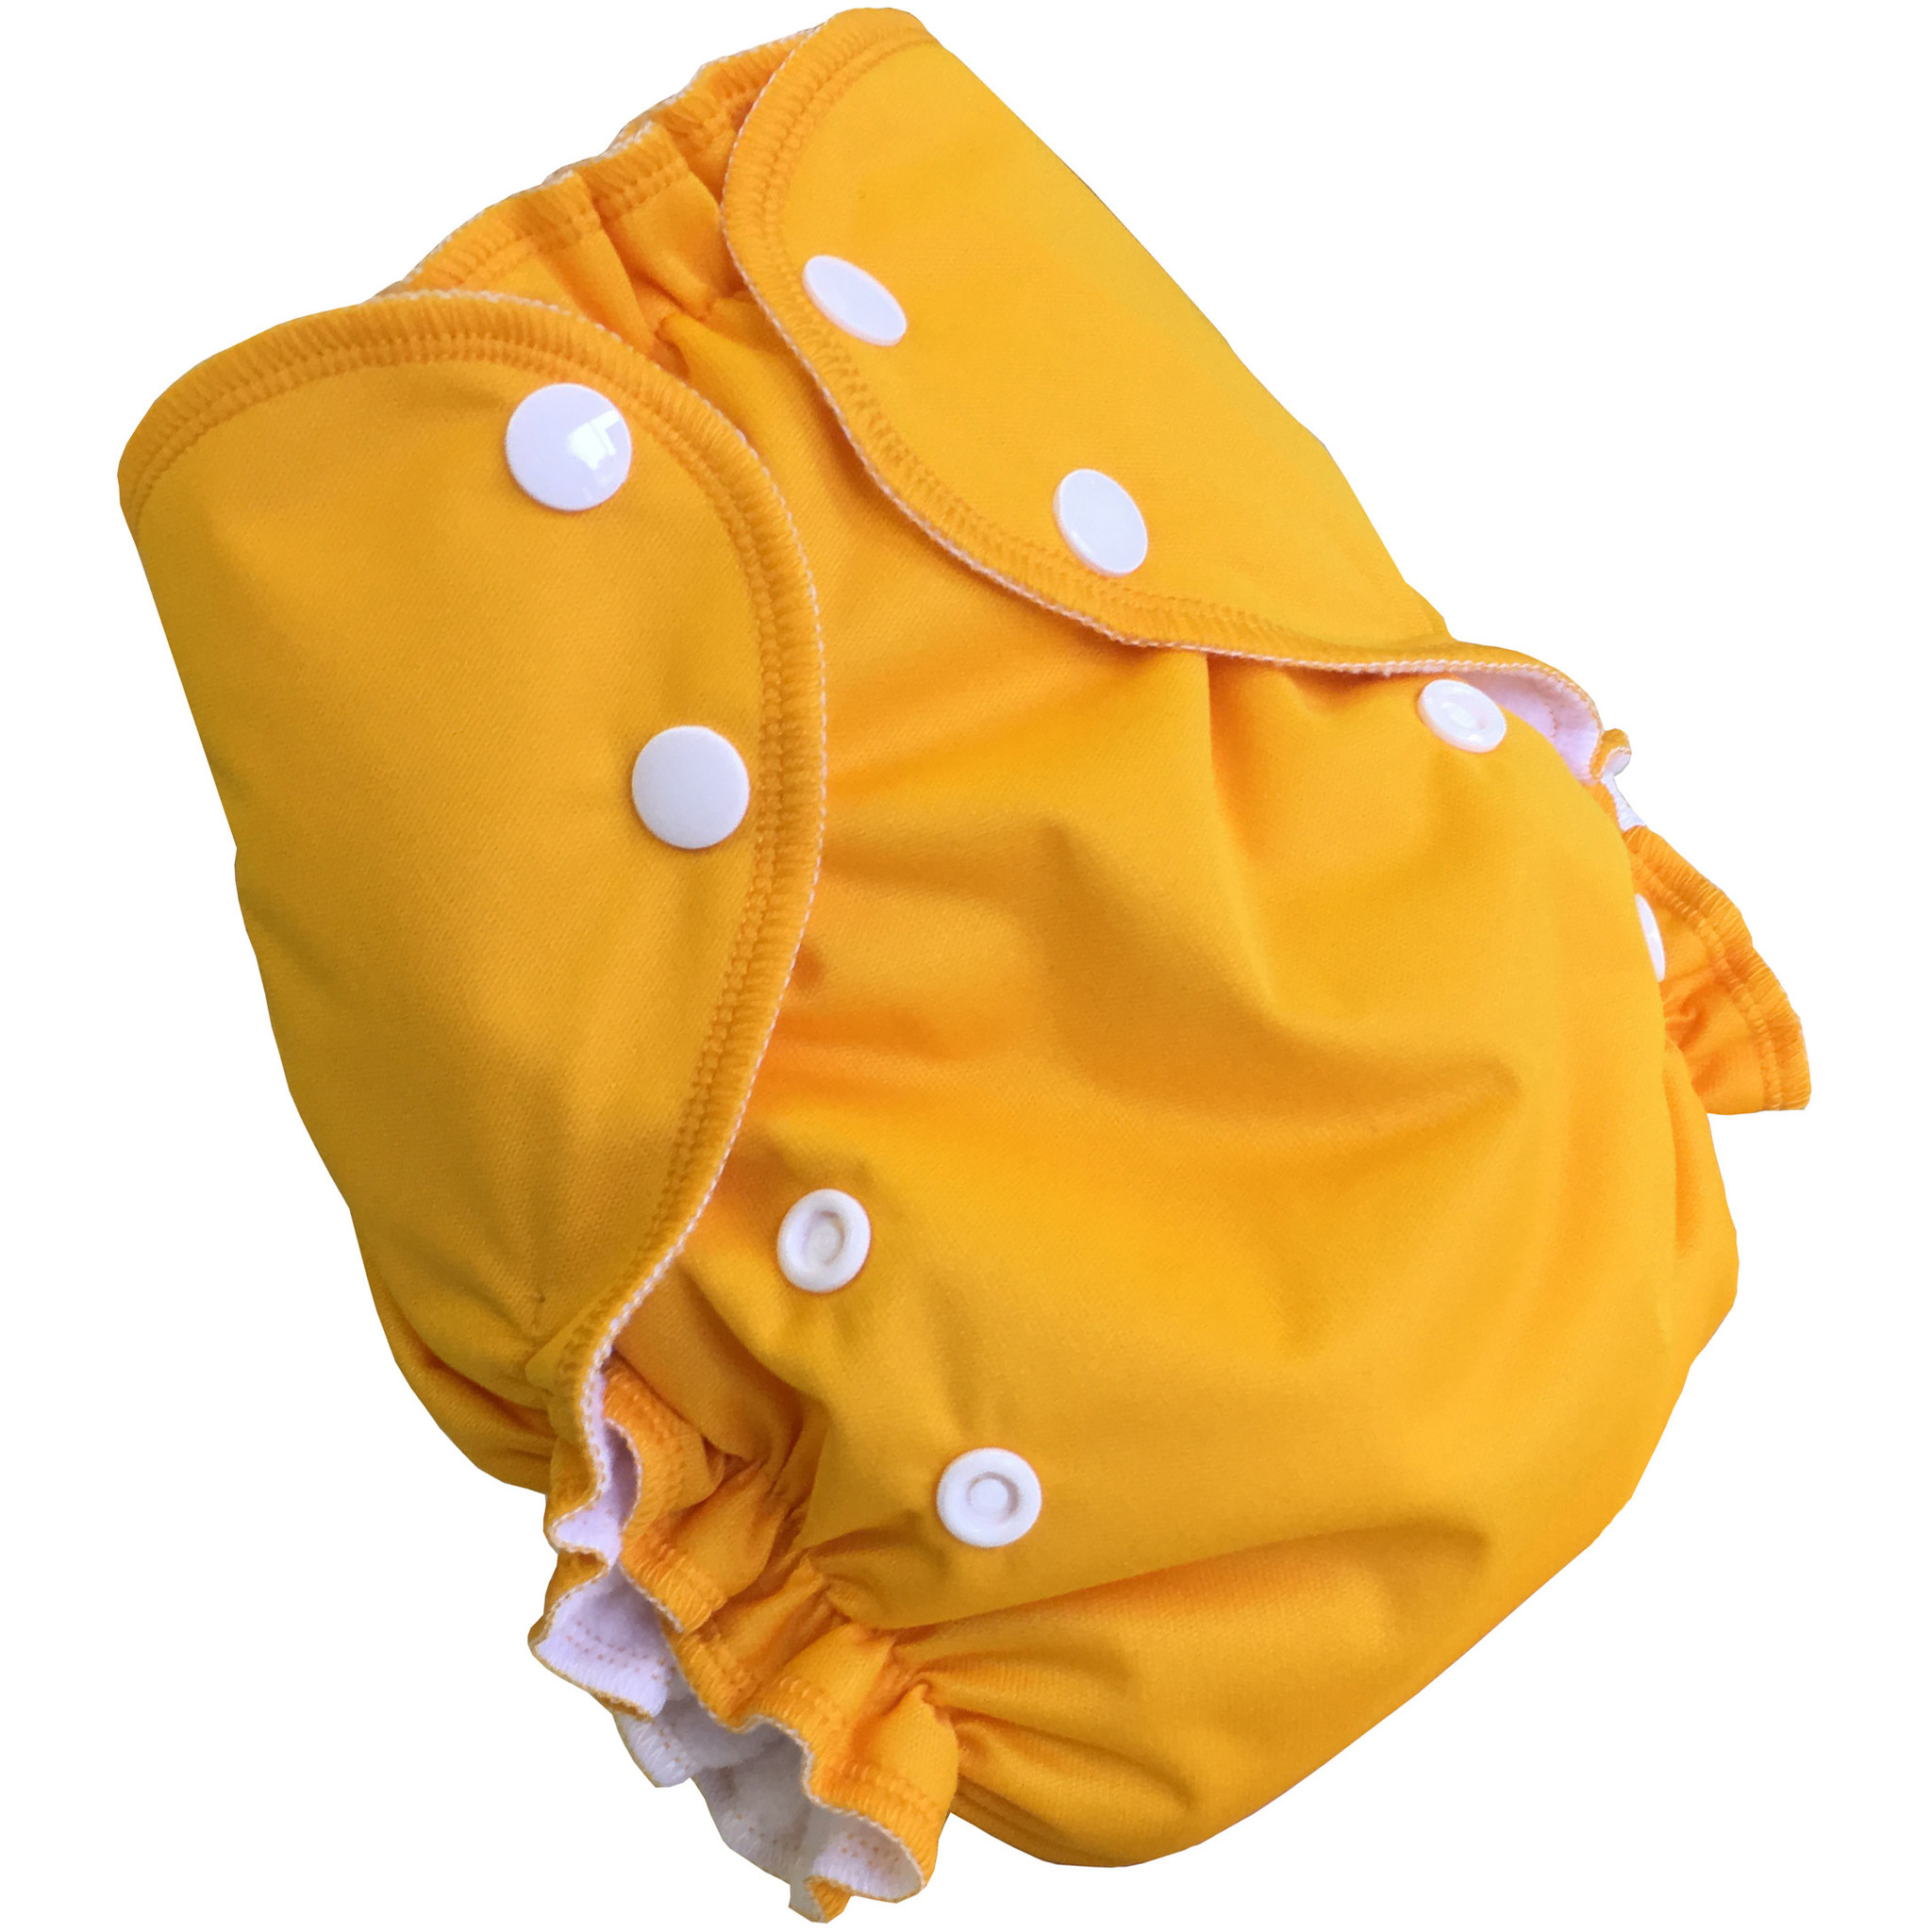 AMP Diapers AMP one-size duo diapers (solid colors)